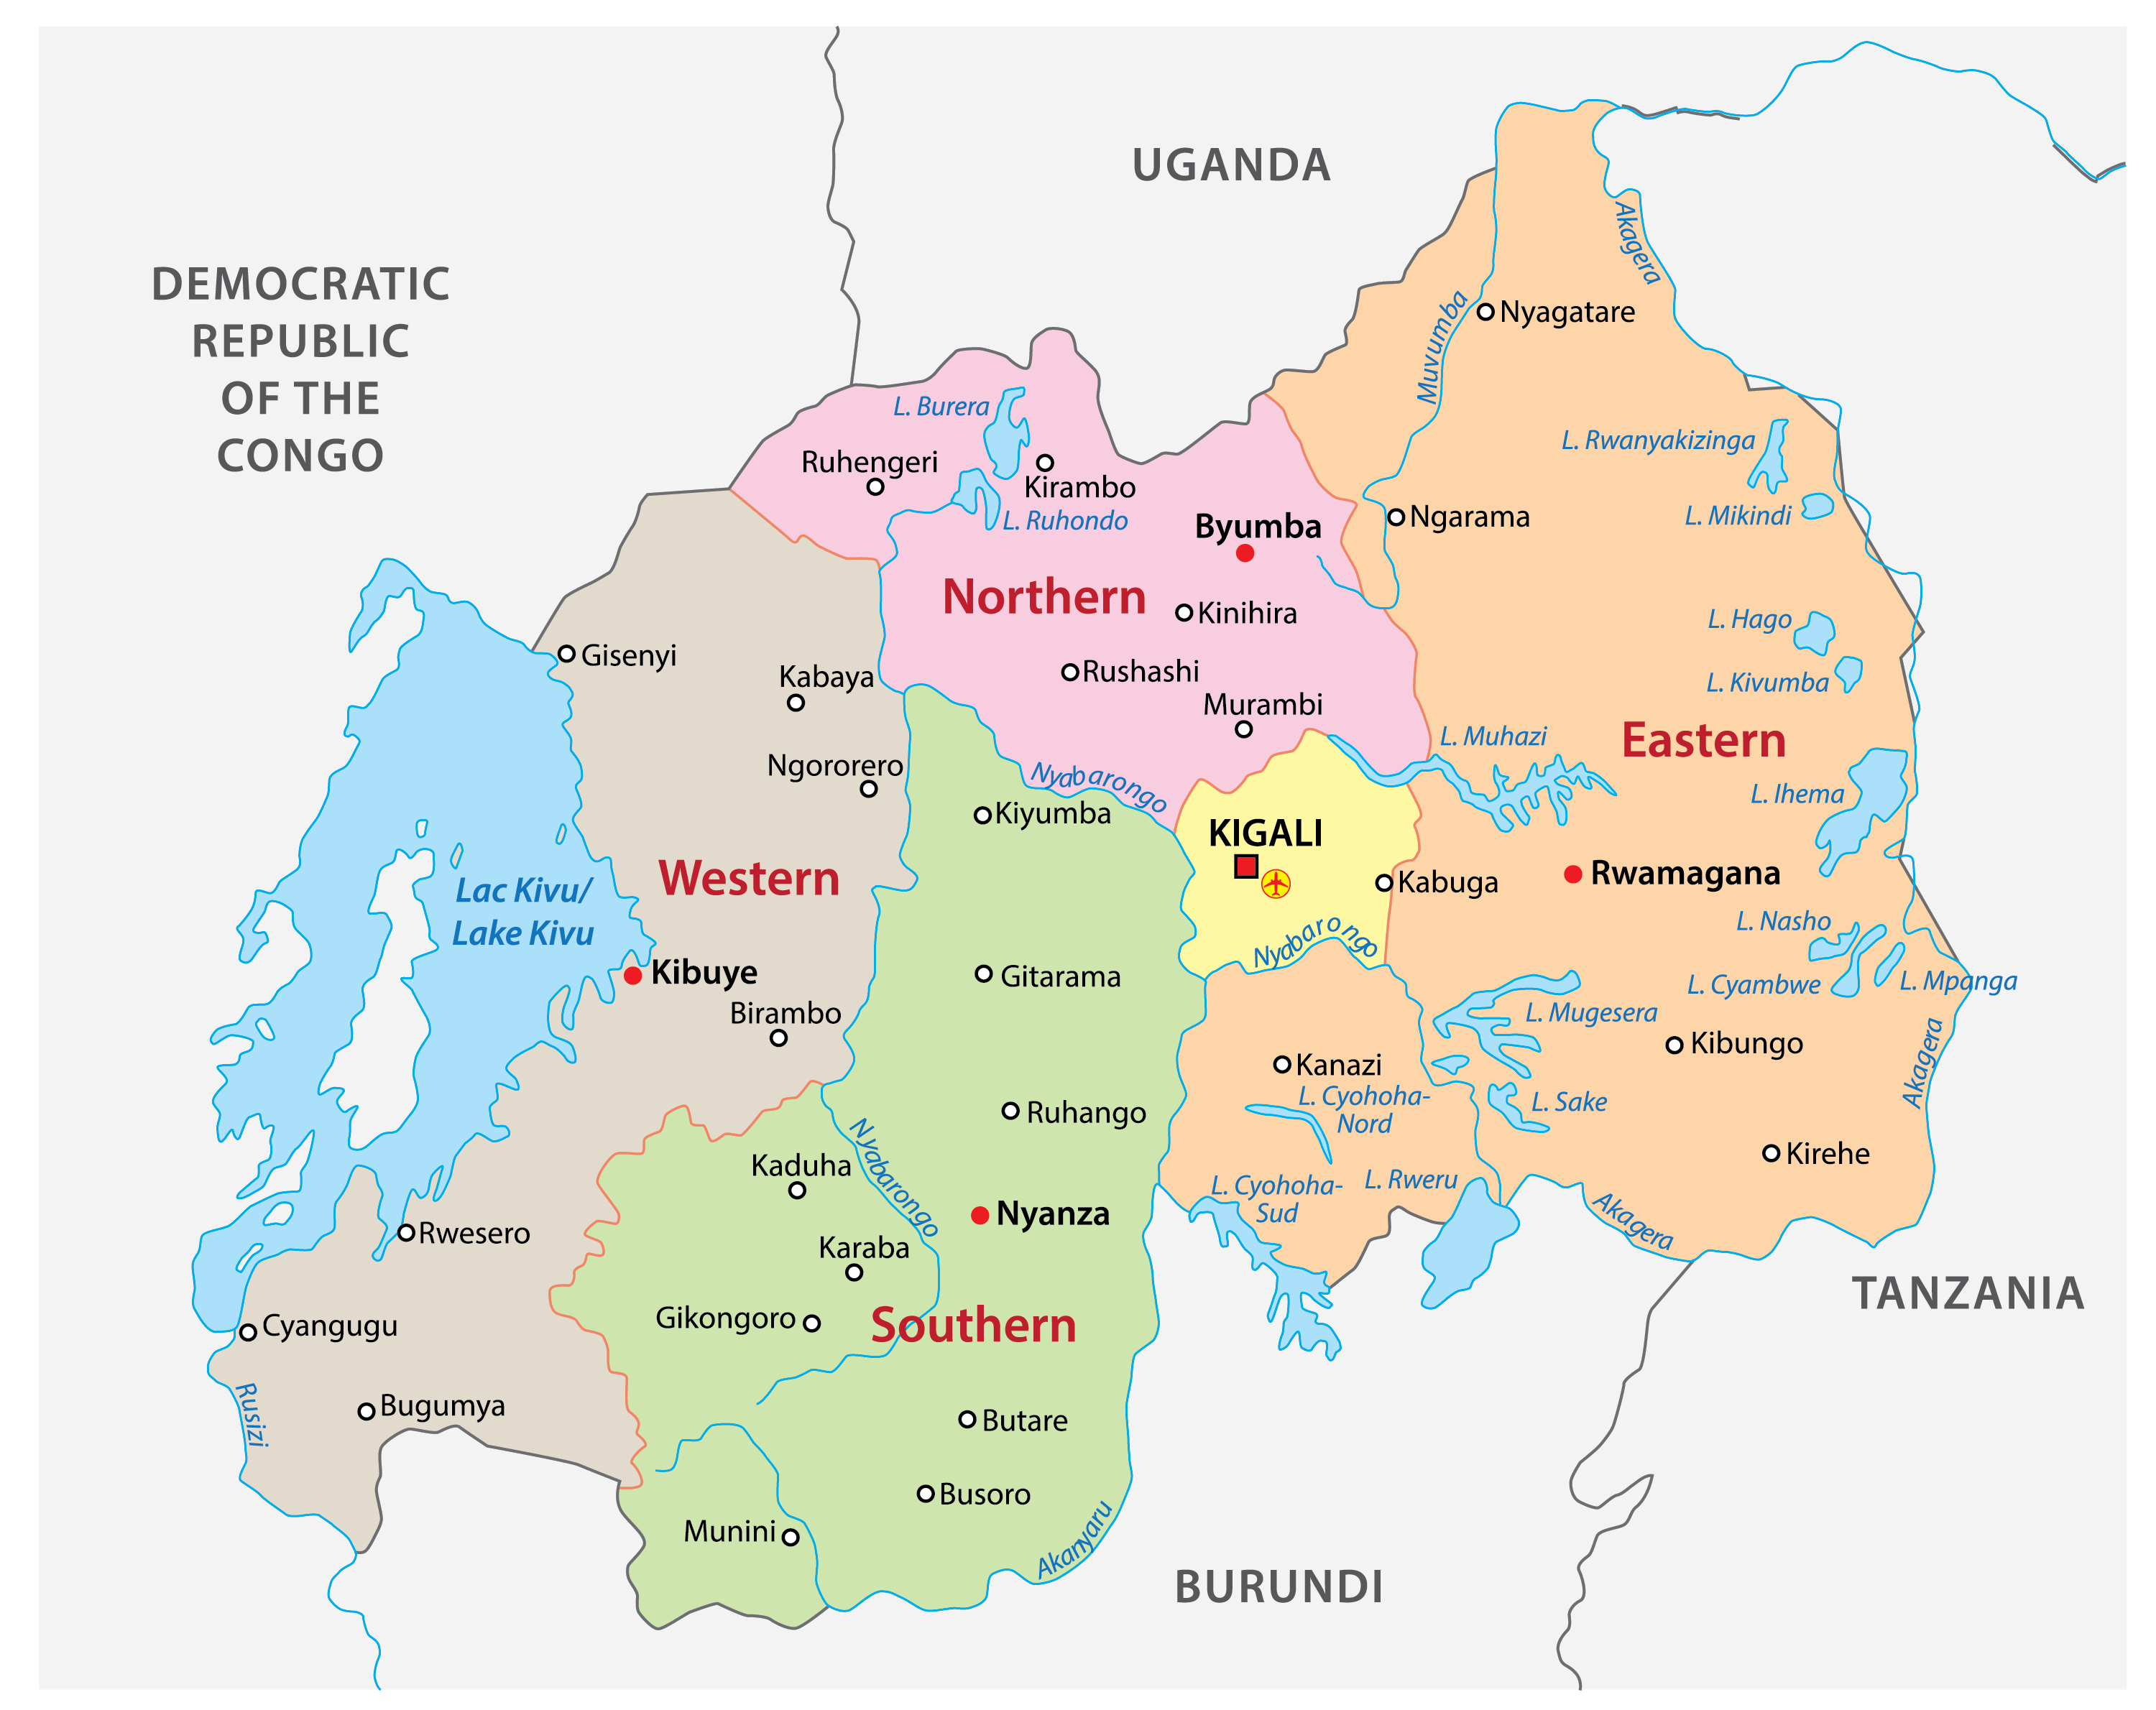 Political Map of Rwanda displaying its five provinces, their capital cities, and the national capital of Kigali City.